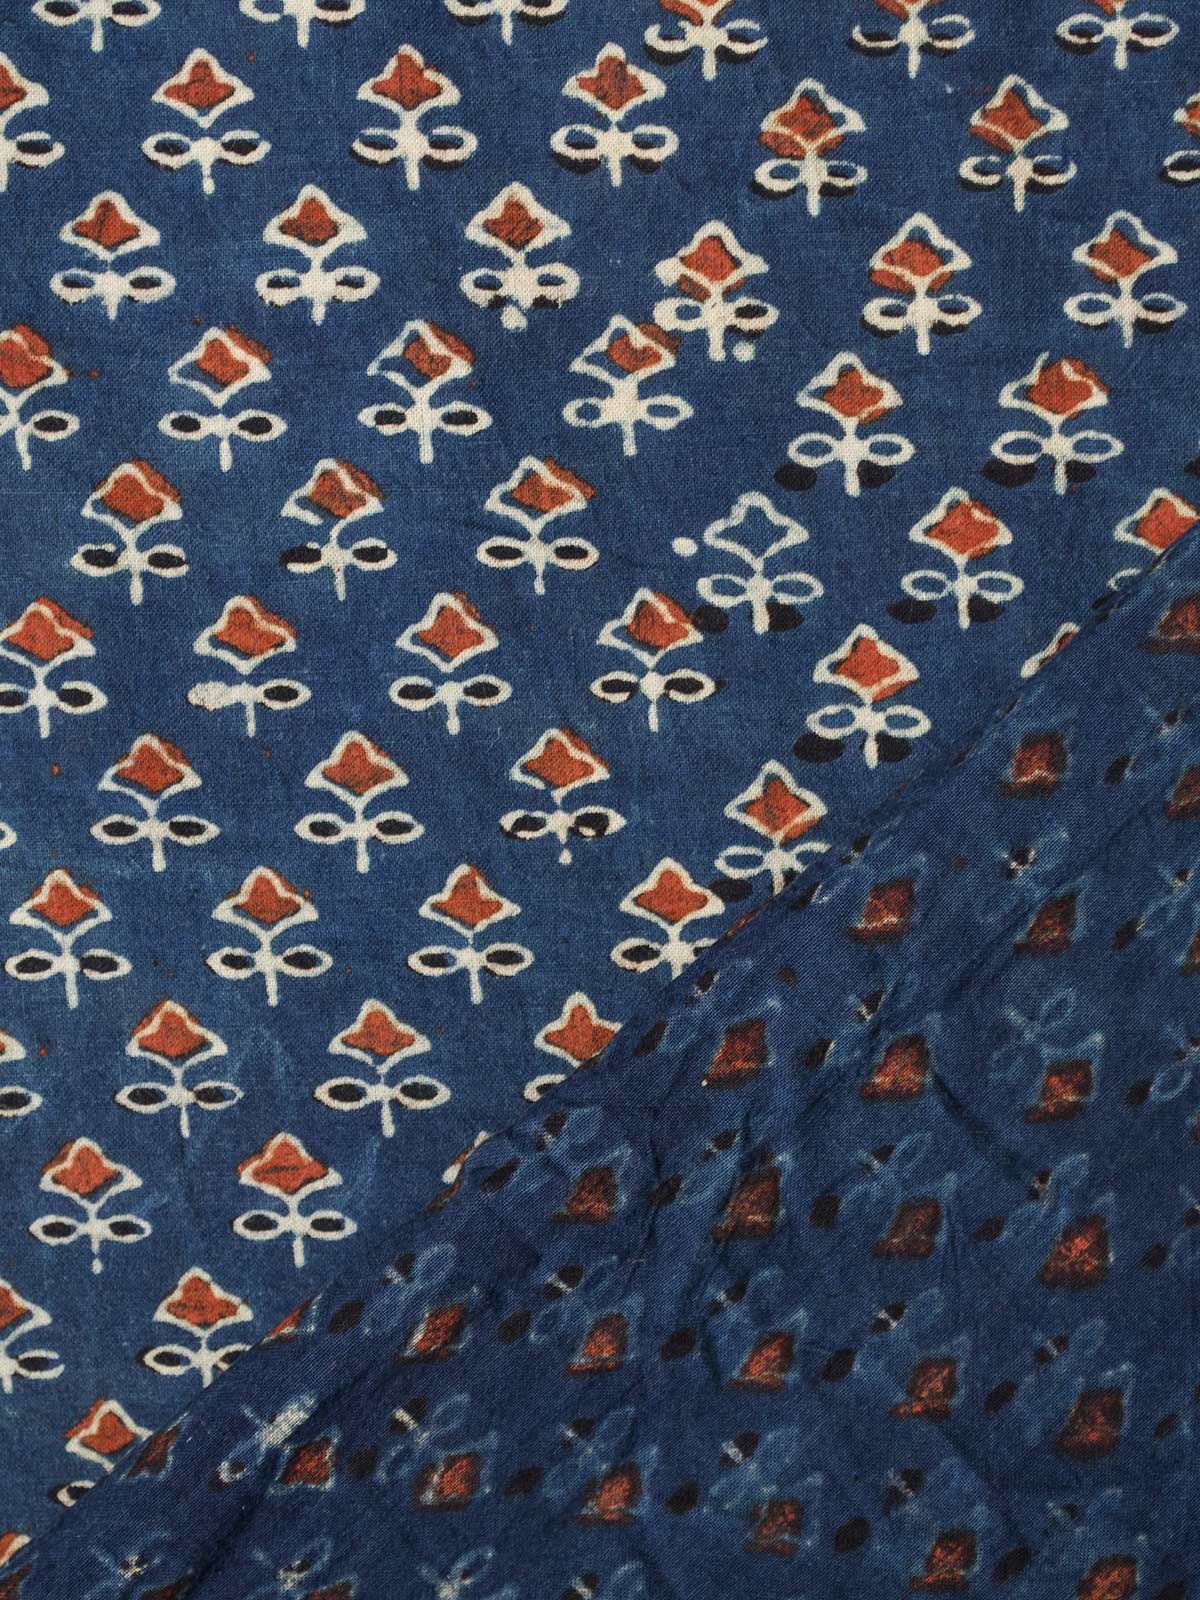 Blue Ajrak Block Print Cotton Fabric